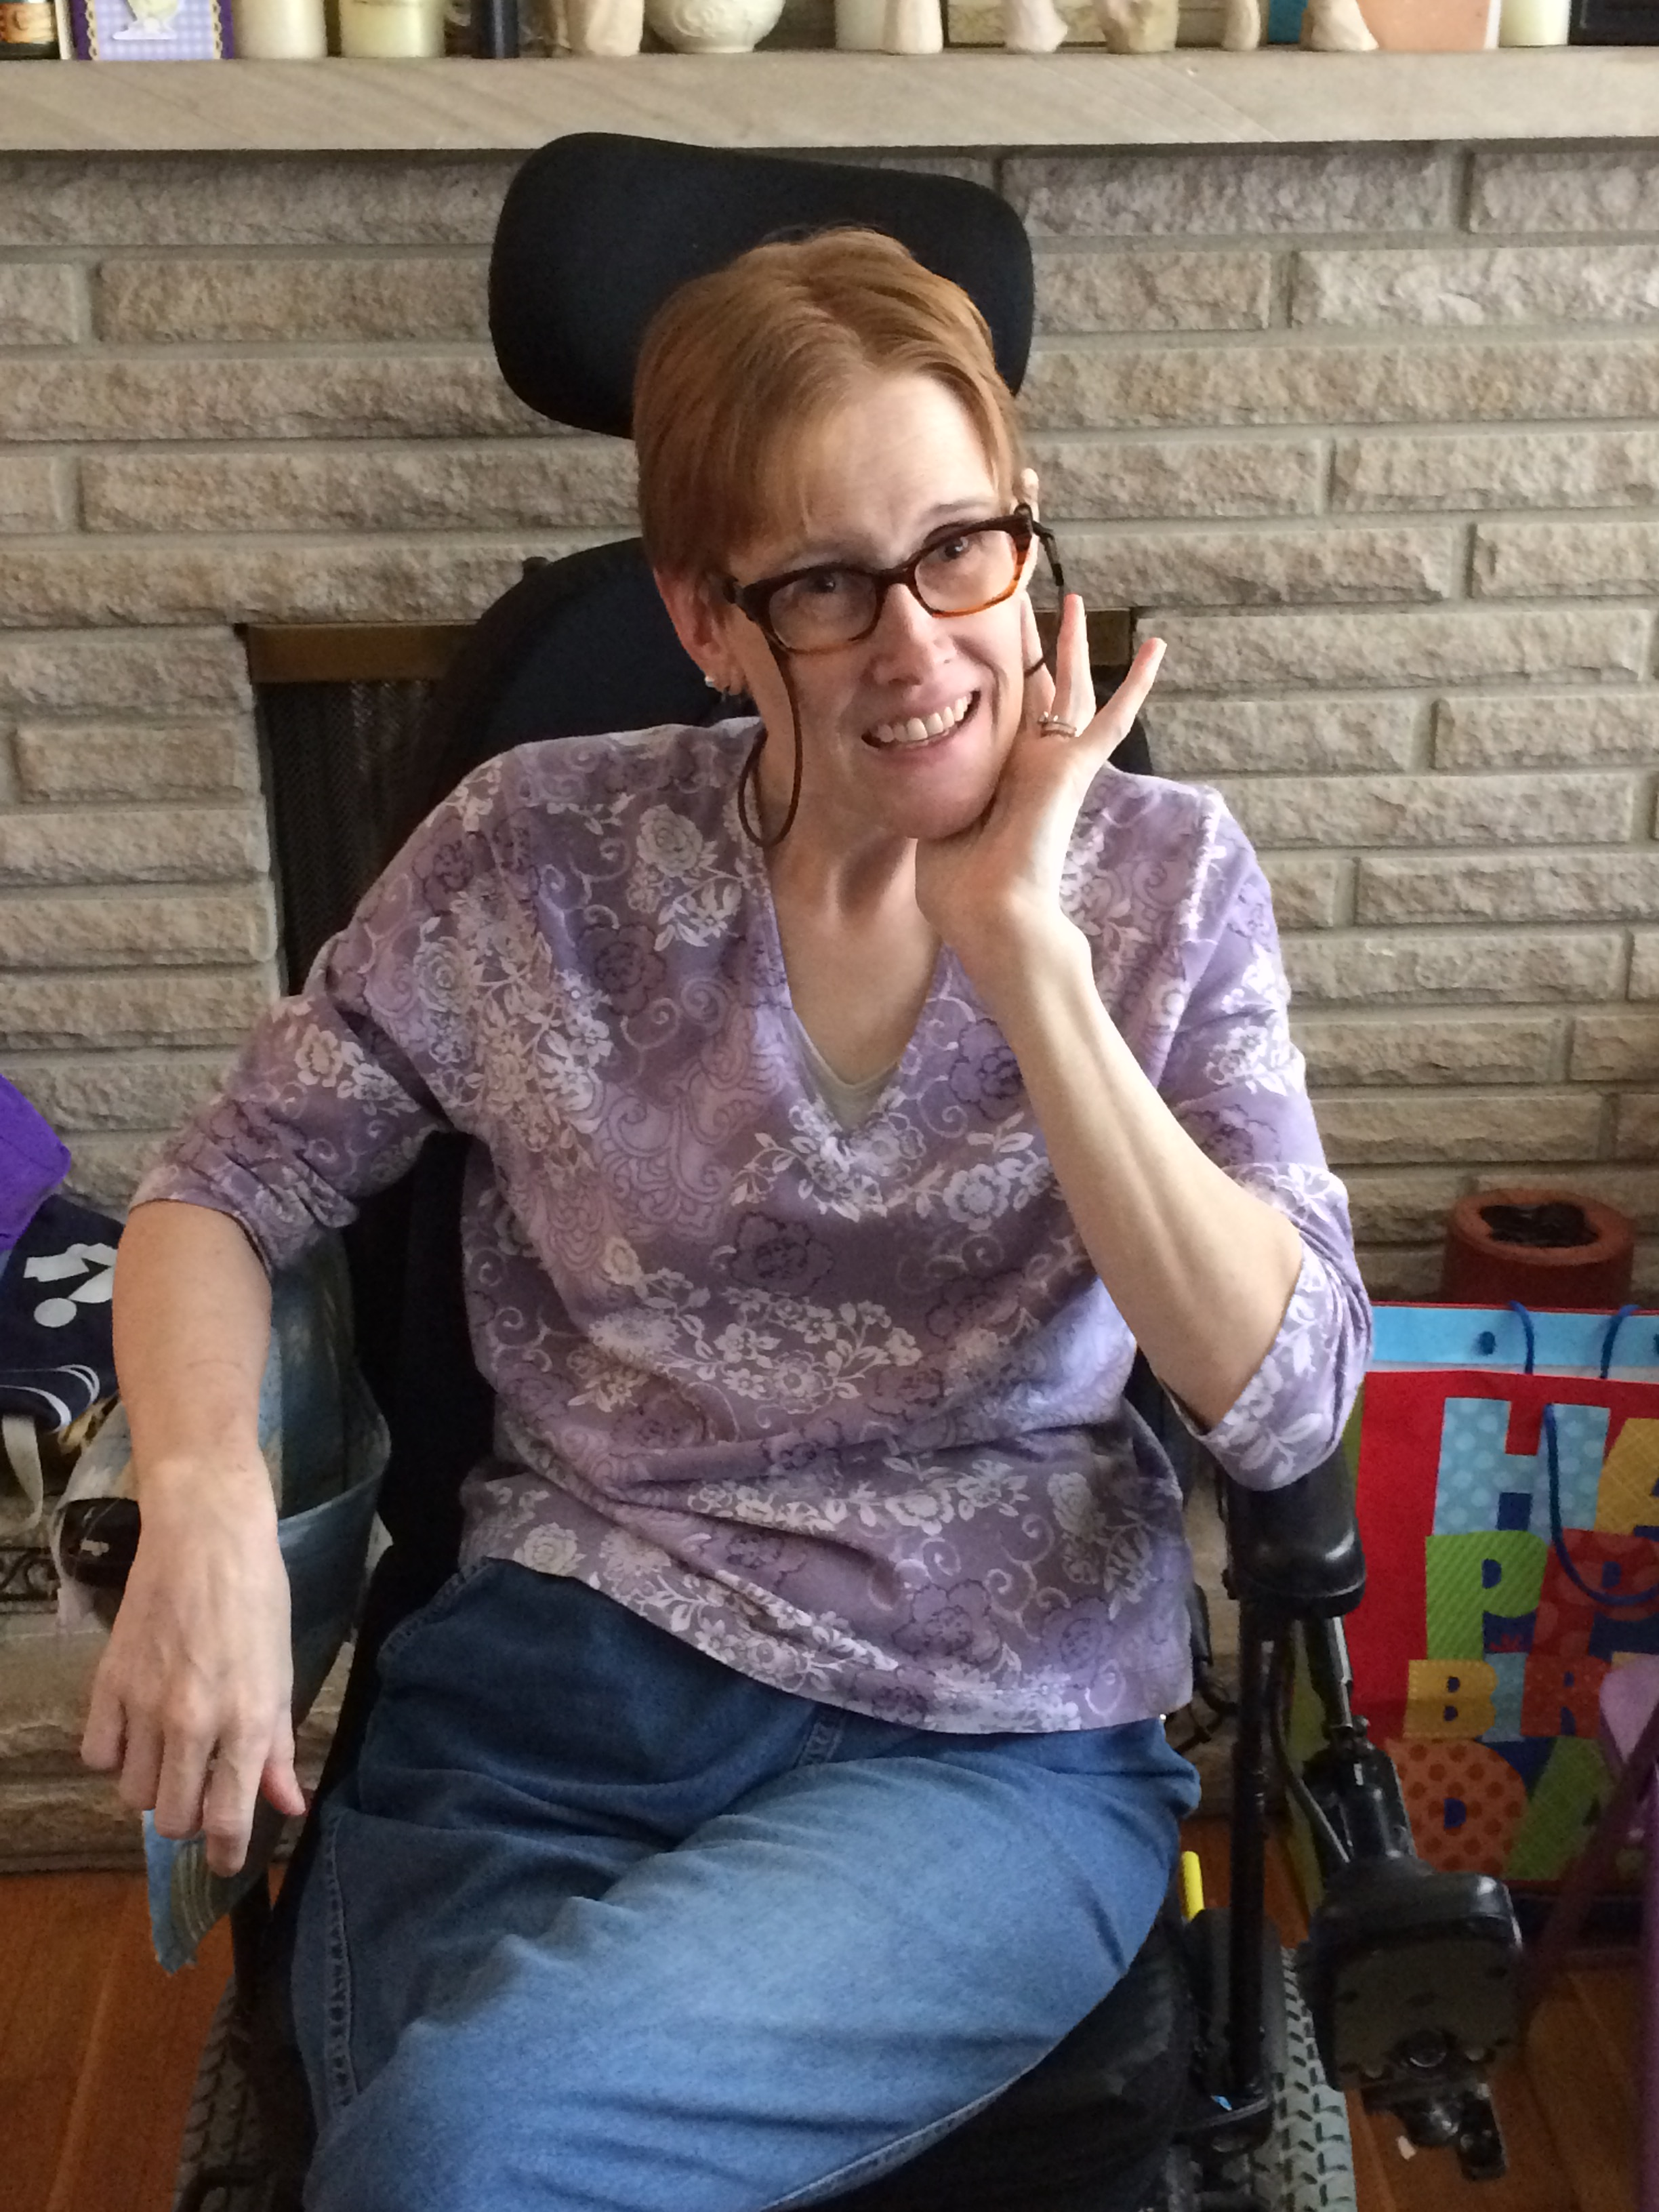 Redheaded lady sitting in a wheelchair, wearing a purple shirt and jeans.